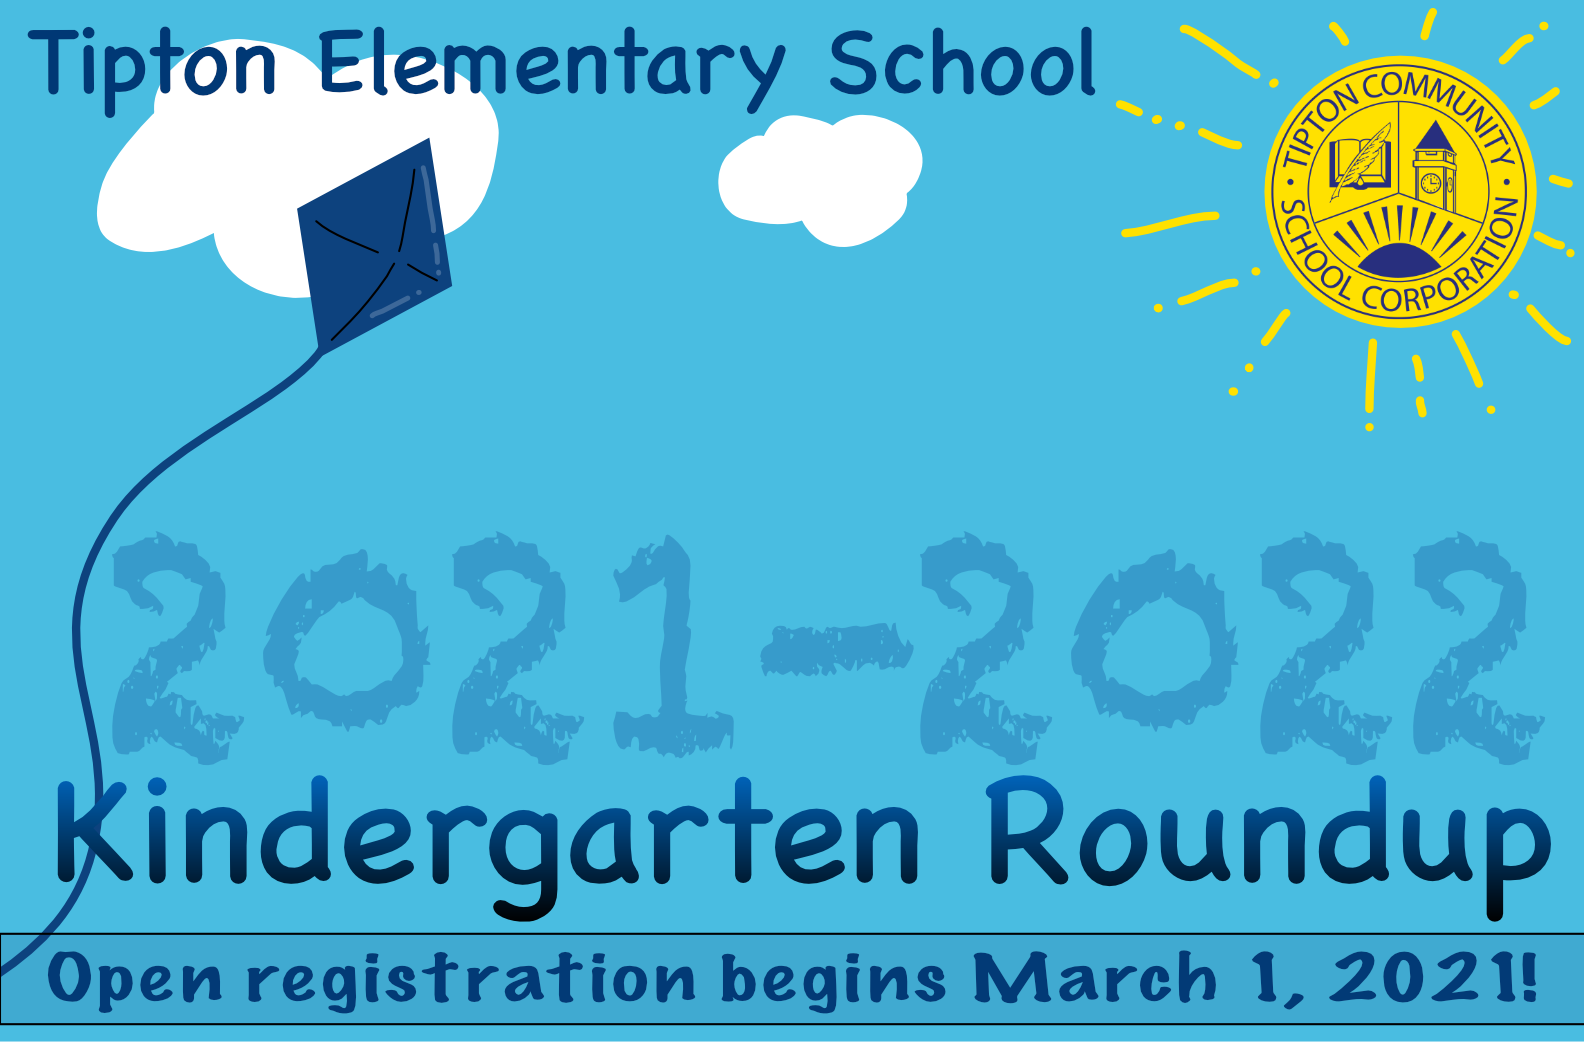 Registration begins March 1, 2021